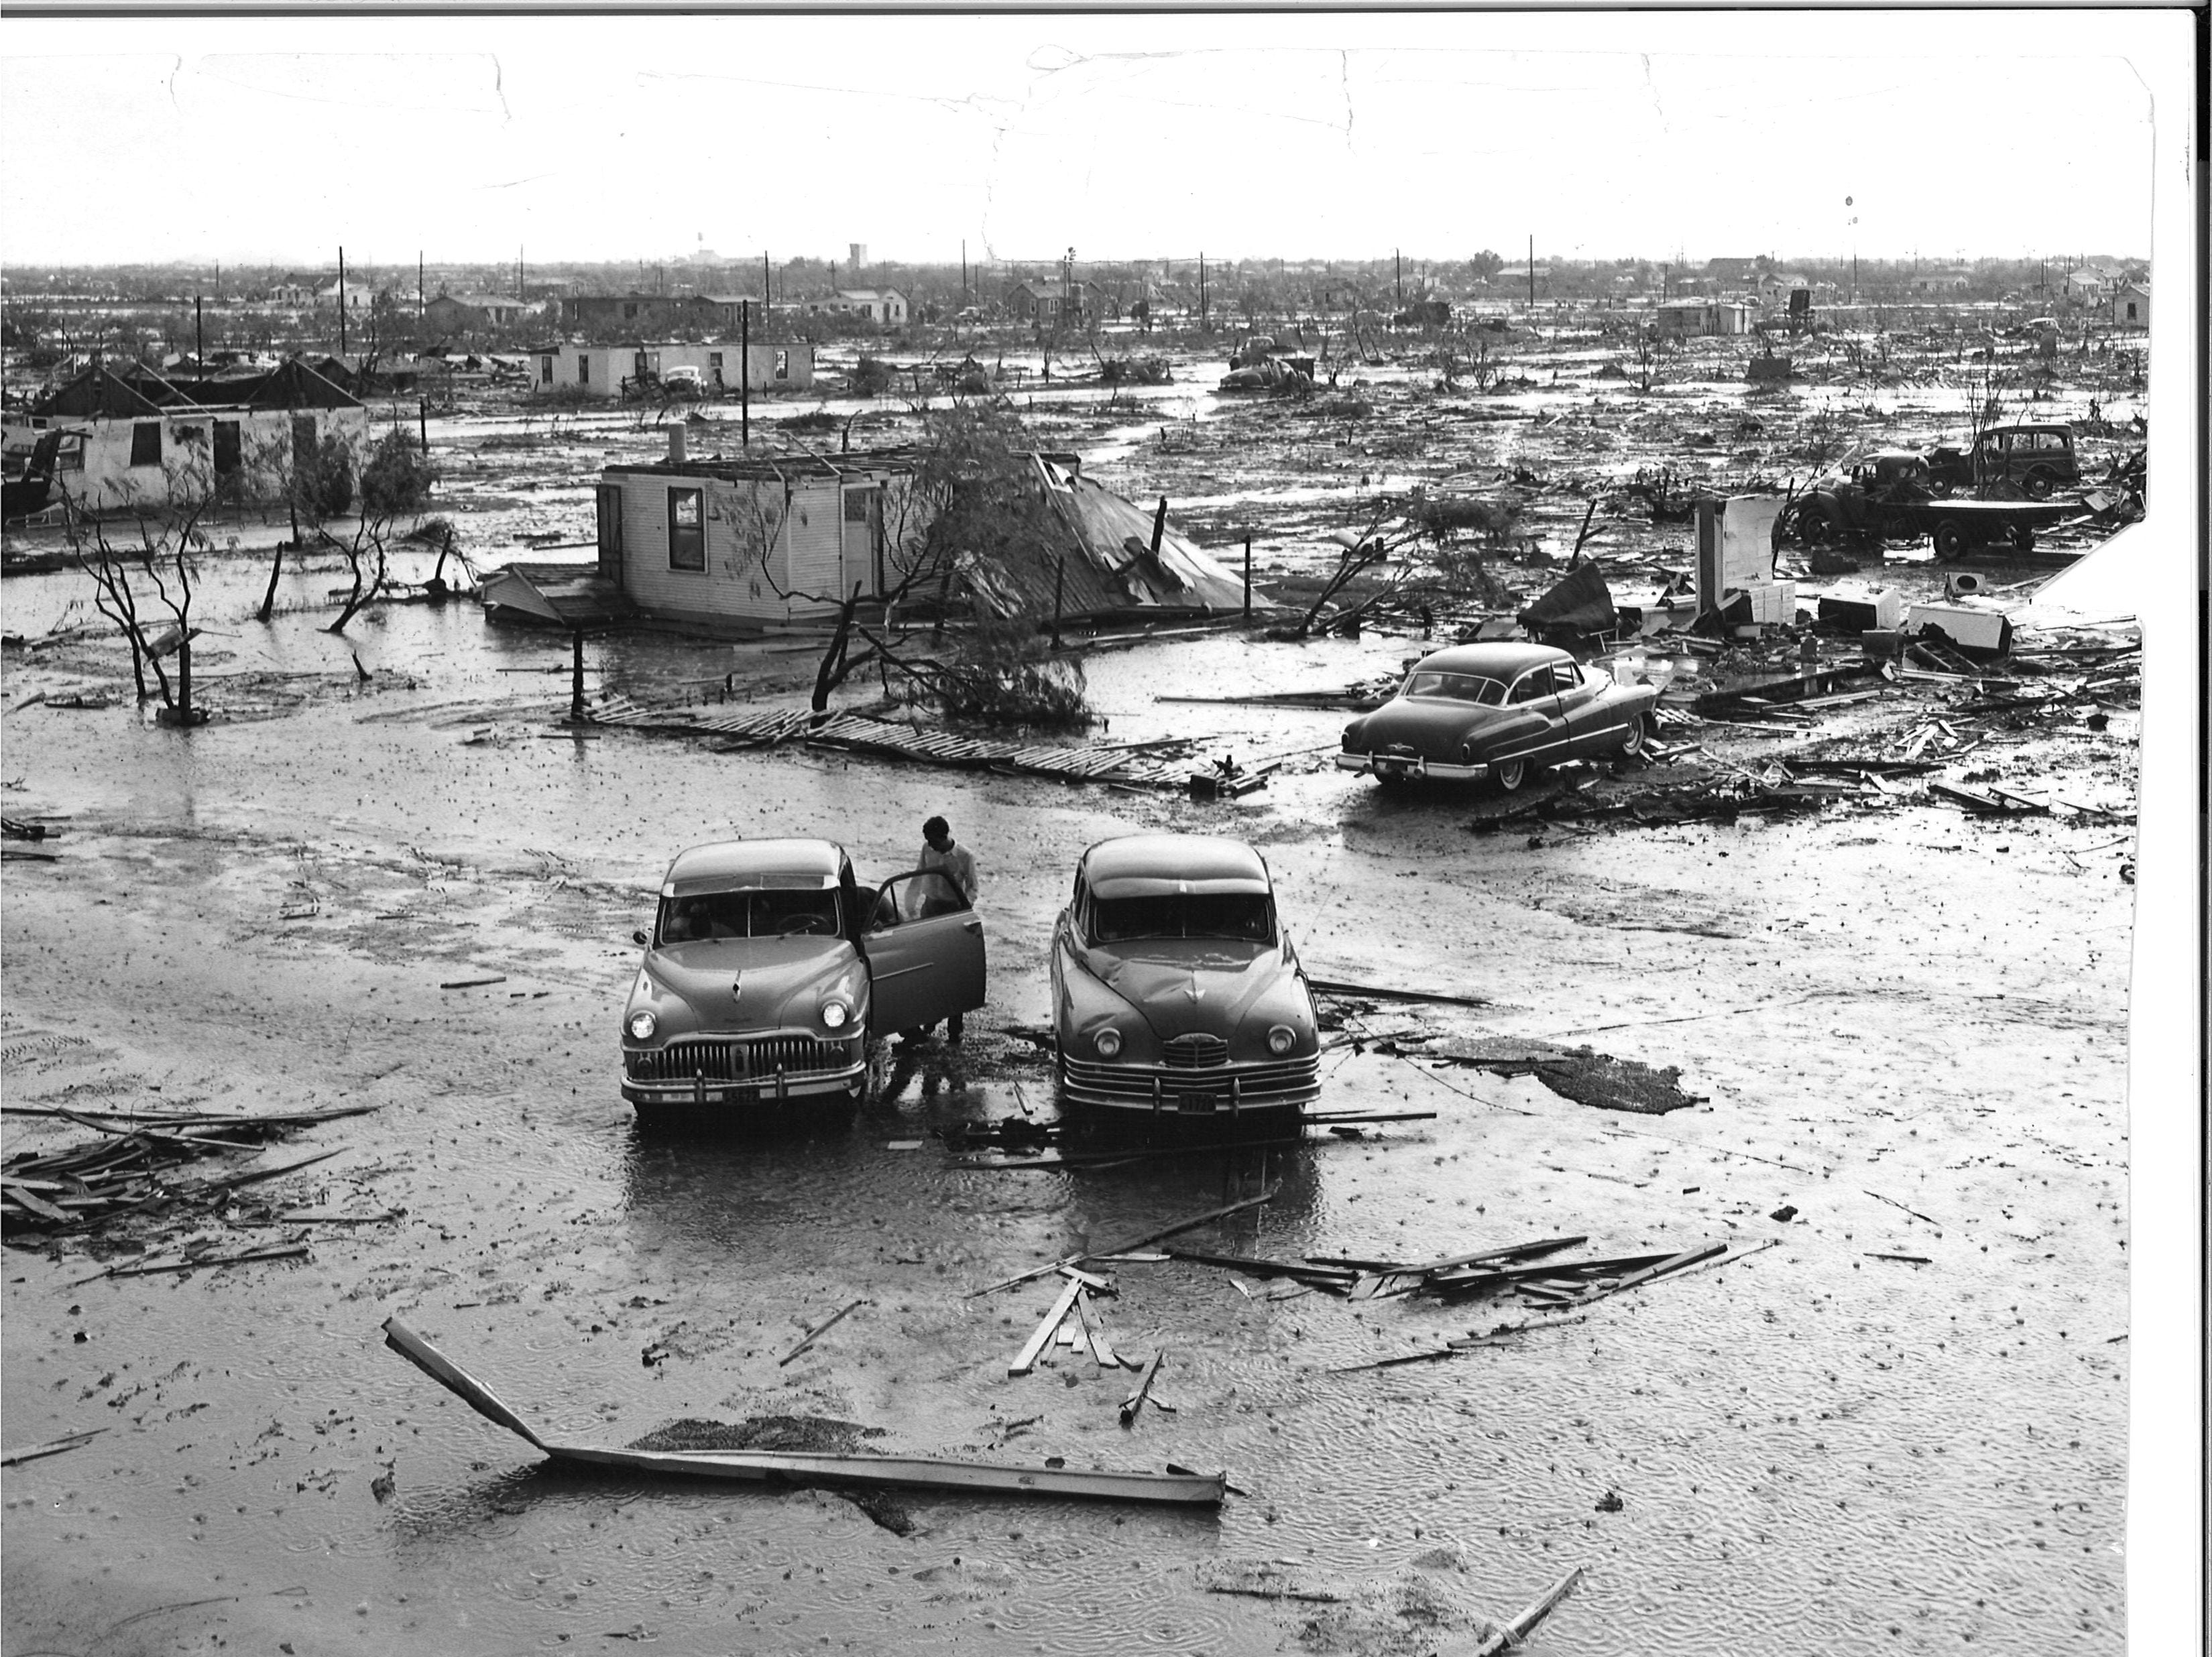 A person looks into their car after the Lake View tornado ripped through San Angelo on May 11, 1953. The original cut-line reads: Clean-swept area in center shows how entire blocks of Lake View were flattened. Car, right center, is parked in front of a house which only the floor, a piece of inner wall and a small chest remain. Foreground cars were not in storm.